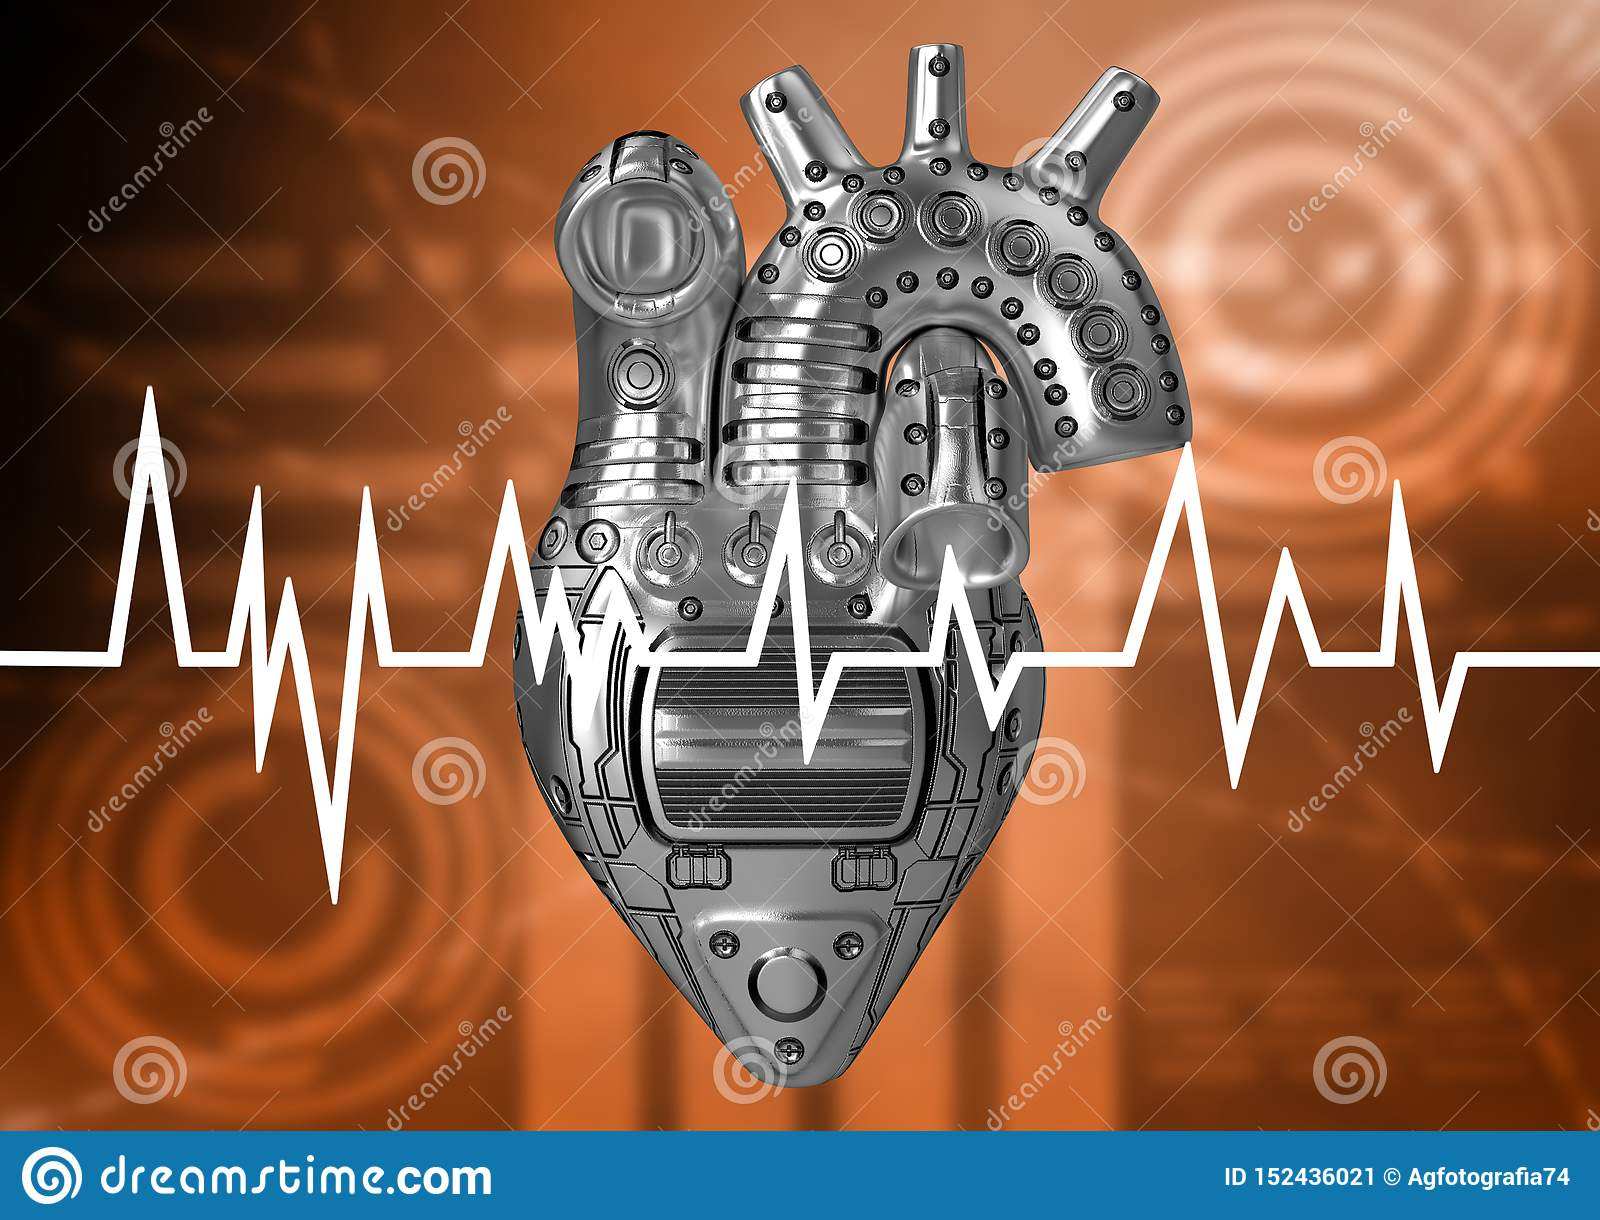 Heart of steel, concept of prevention of heart problems. Cardiac rate assessed by electrocardiogram examination